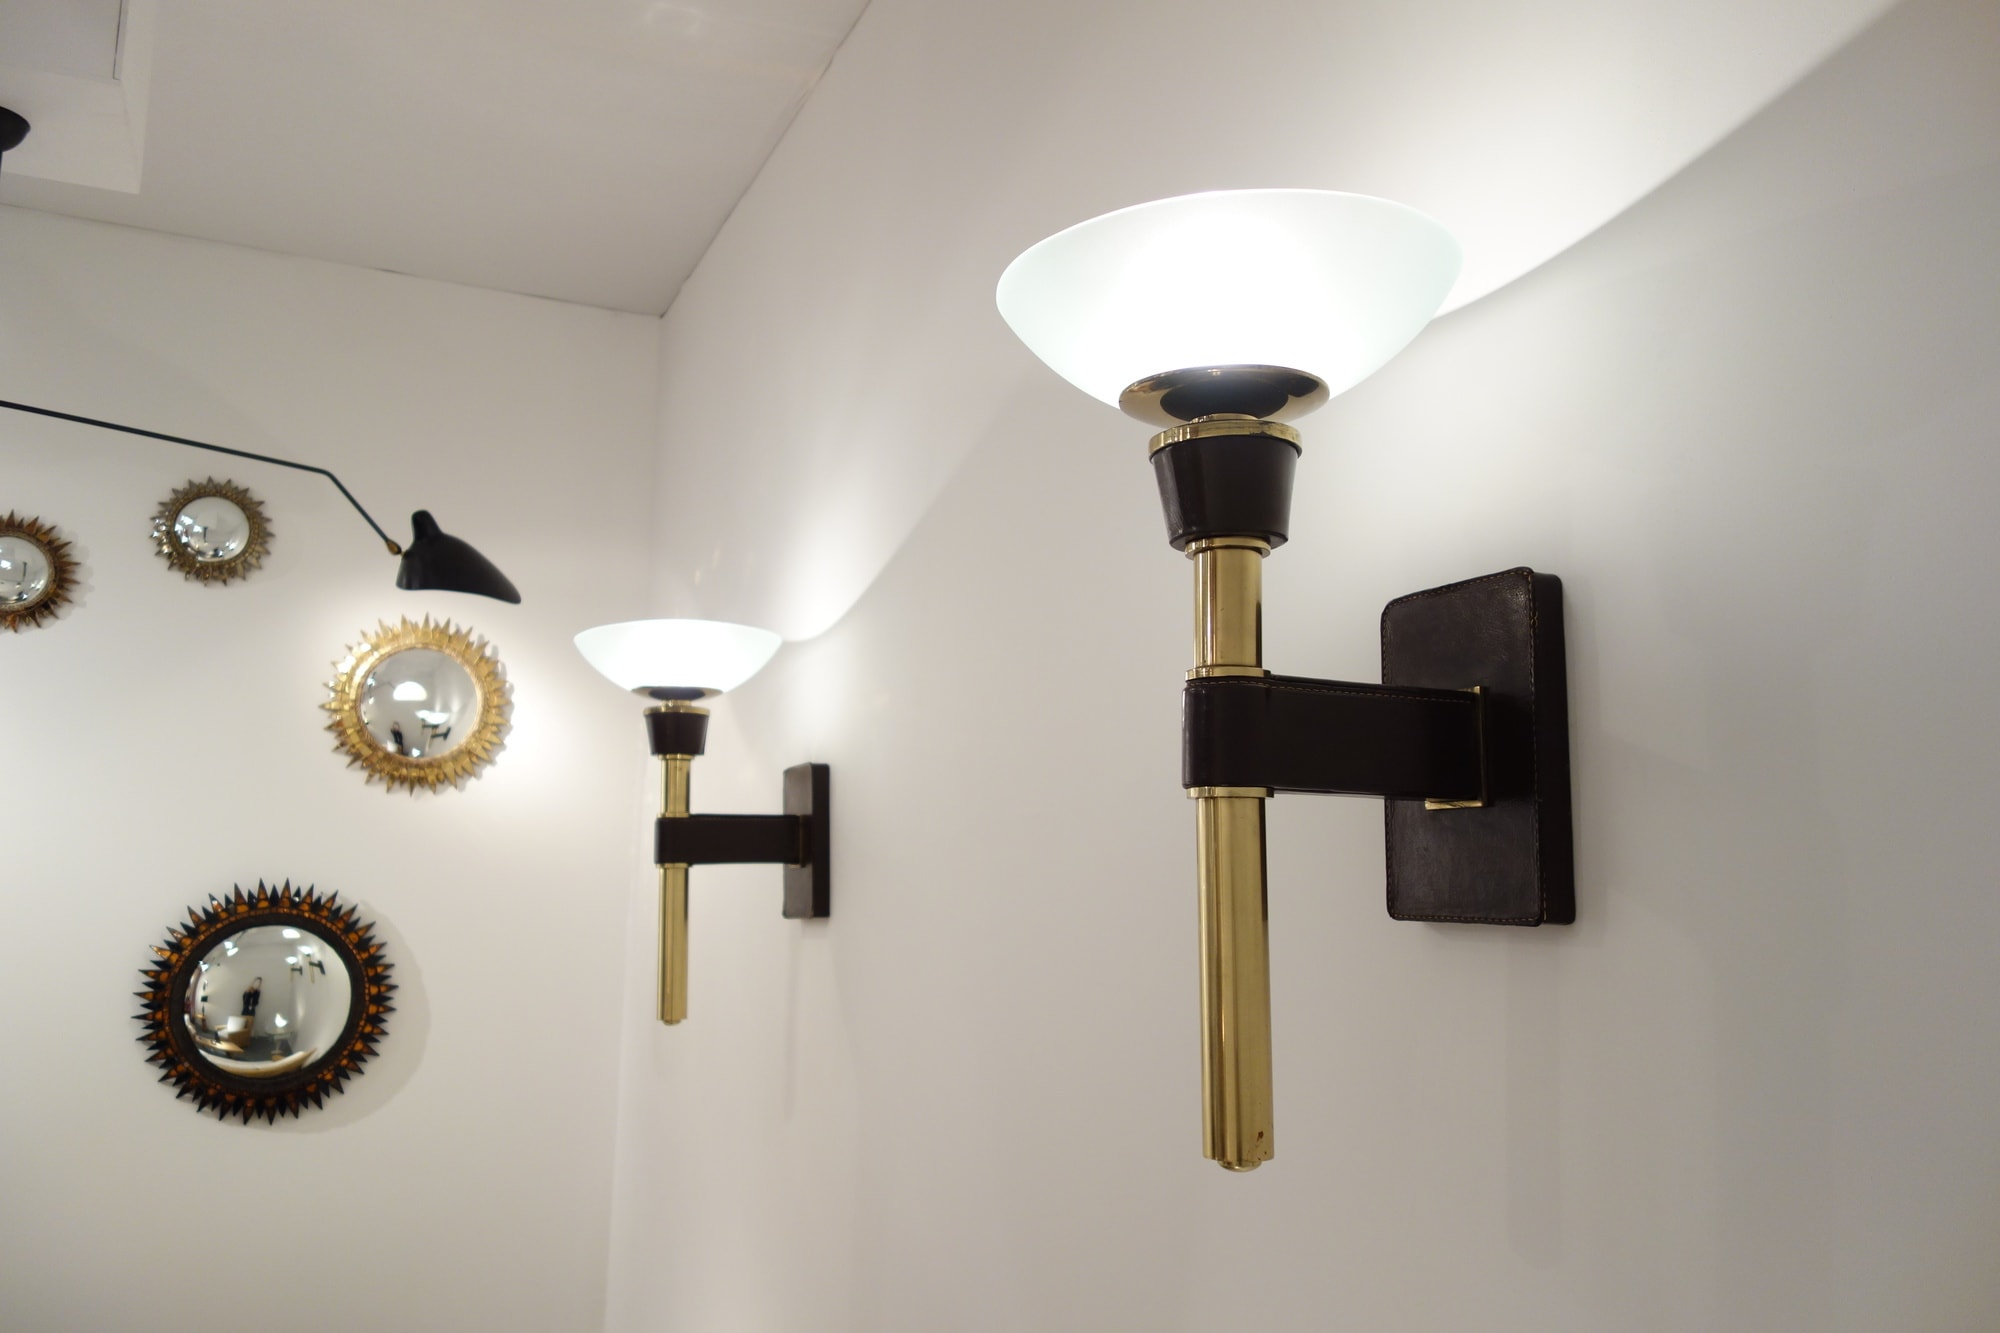 Jacques Adnet, Pair of wall-lamps, vue 01